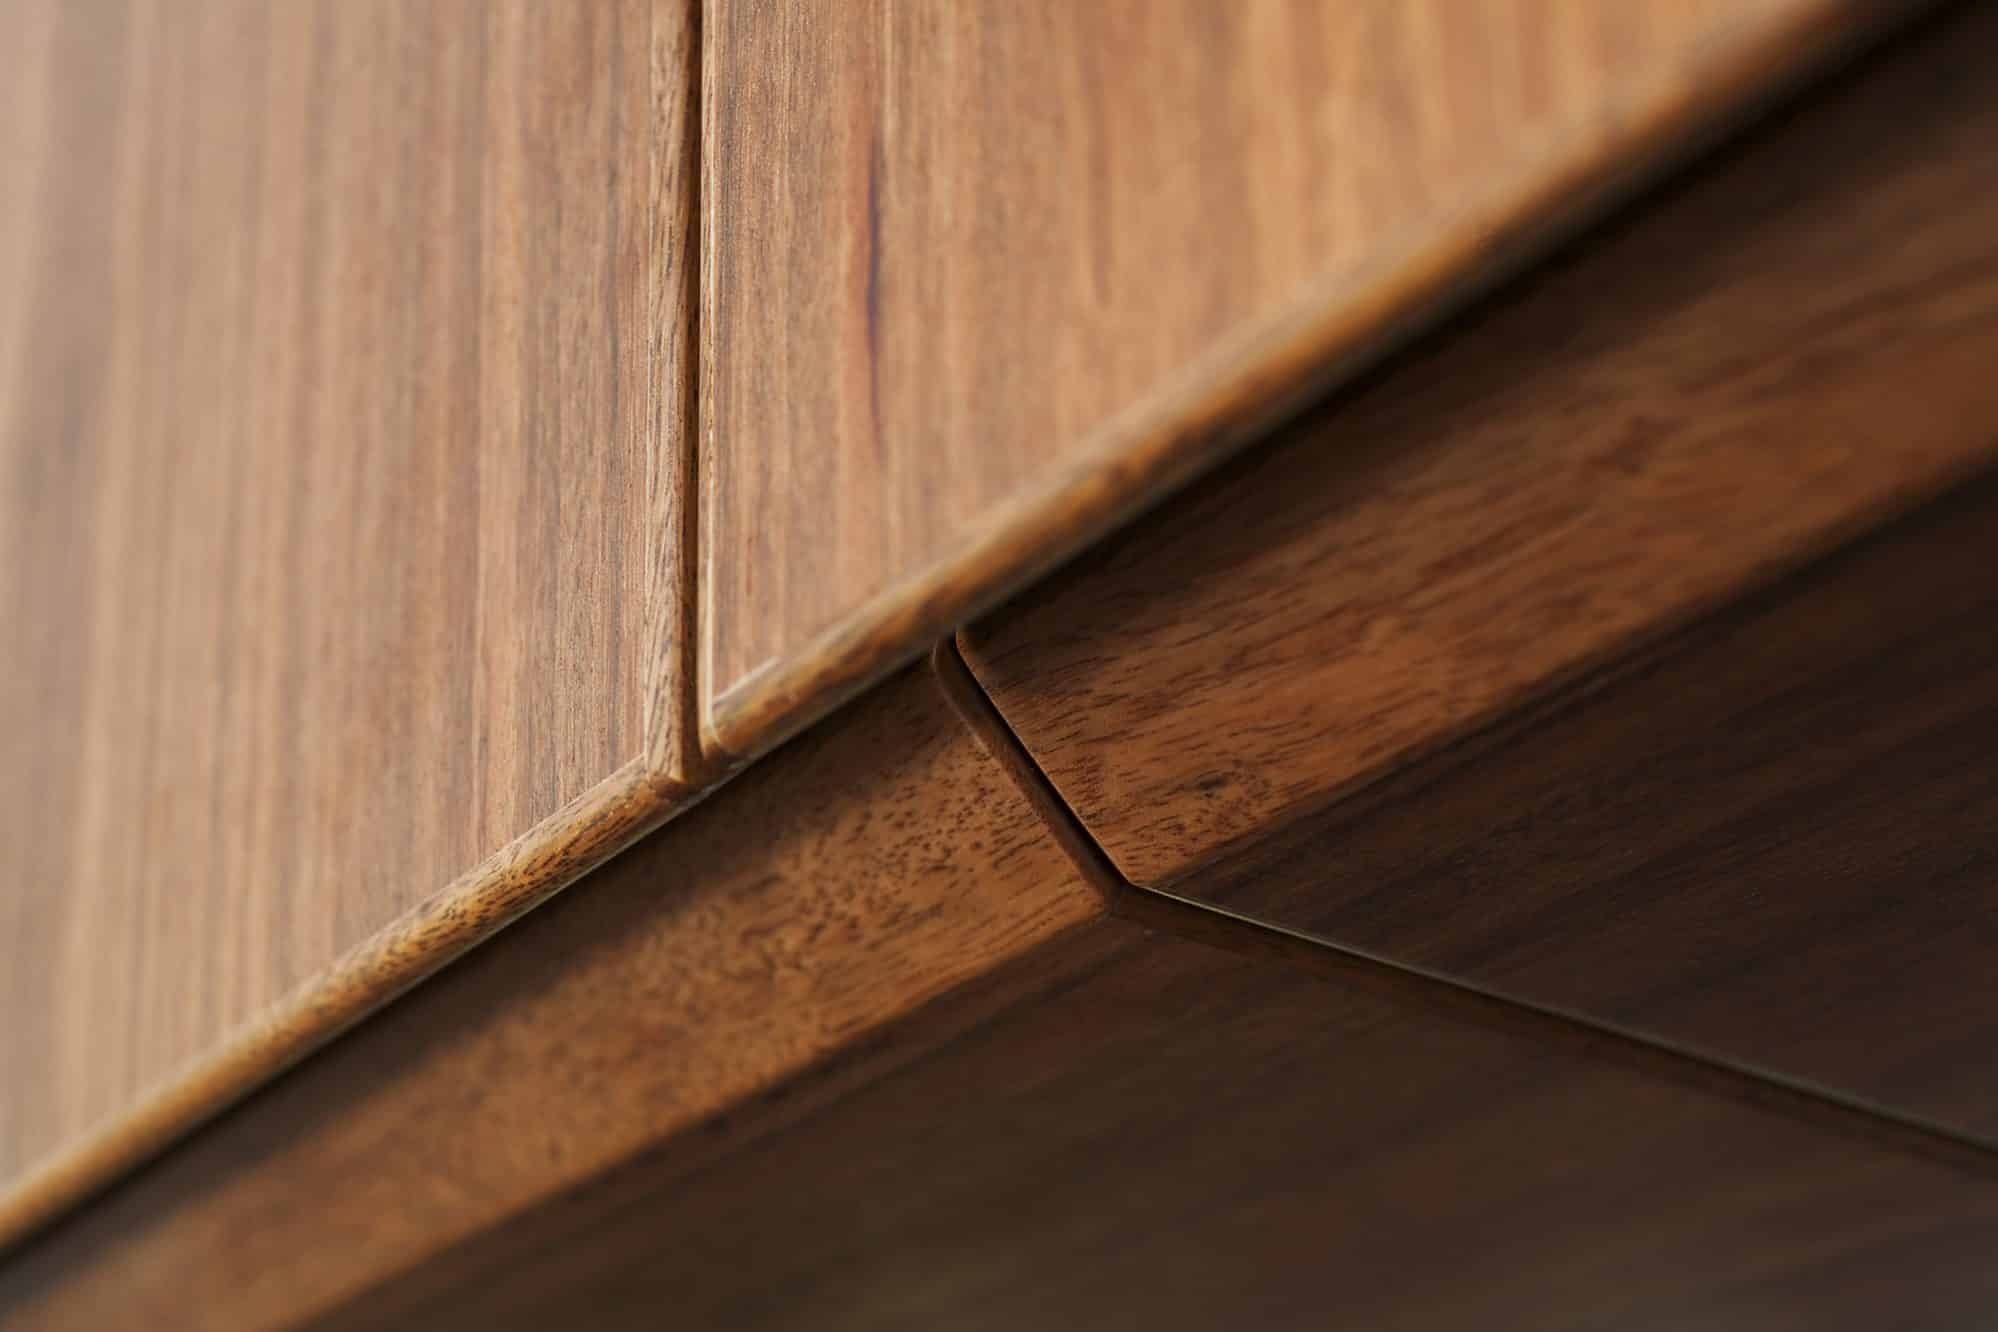 Timber joinery detail